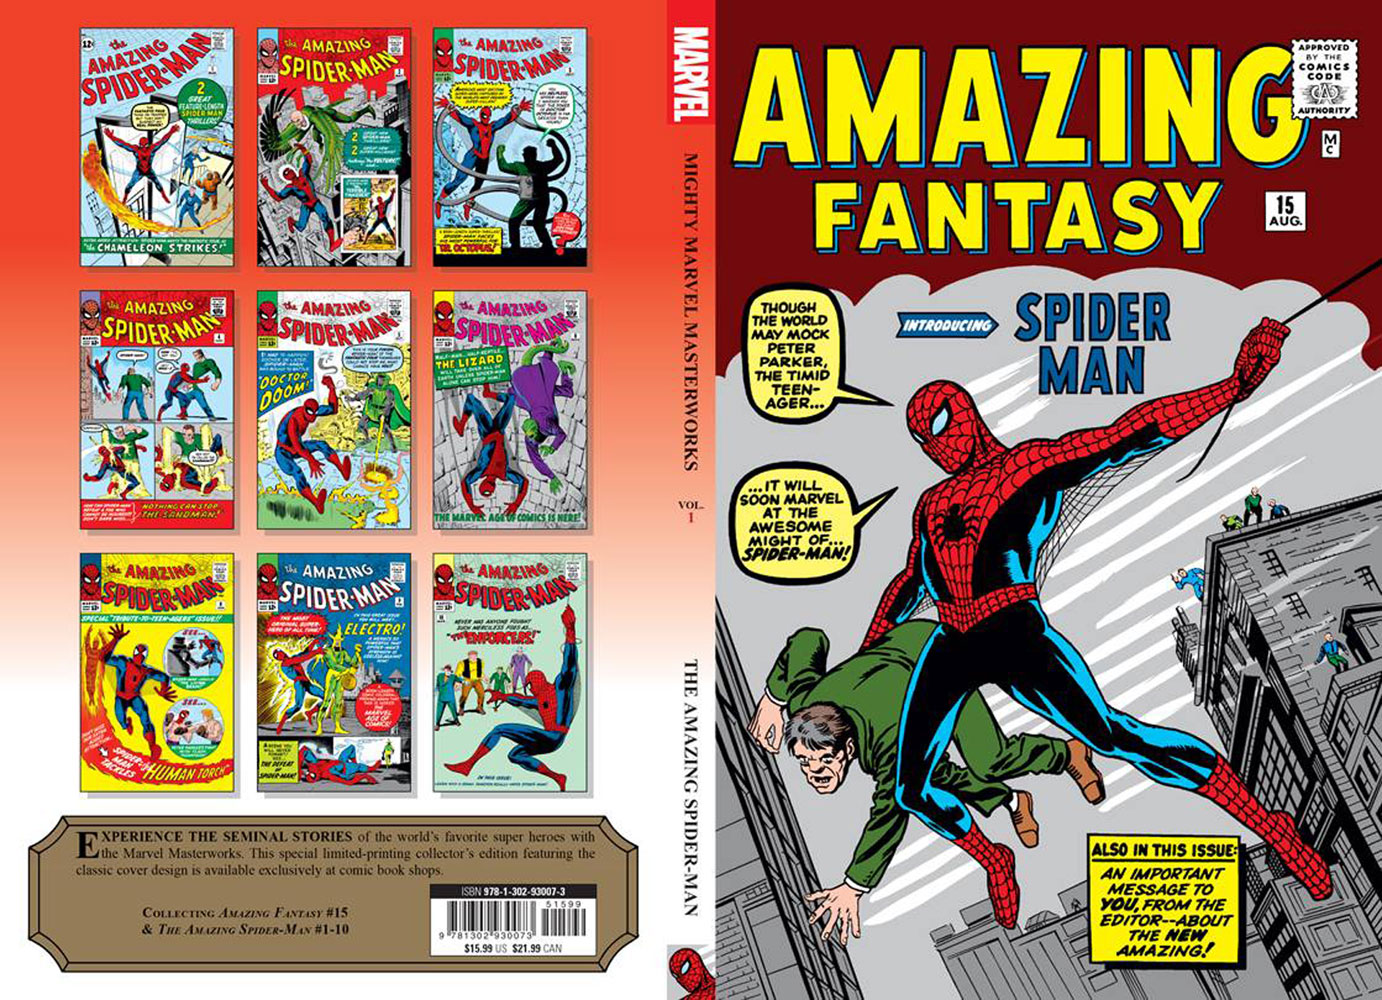 Mighty Marvel Masterworks: The Amazing Spider-Man - With Great Power... SC  (Direct Market edition) - Marvel Comics